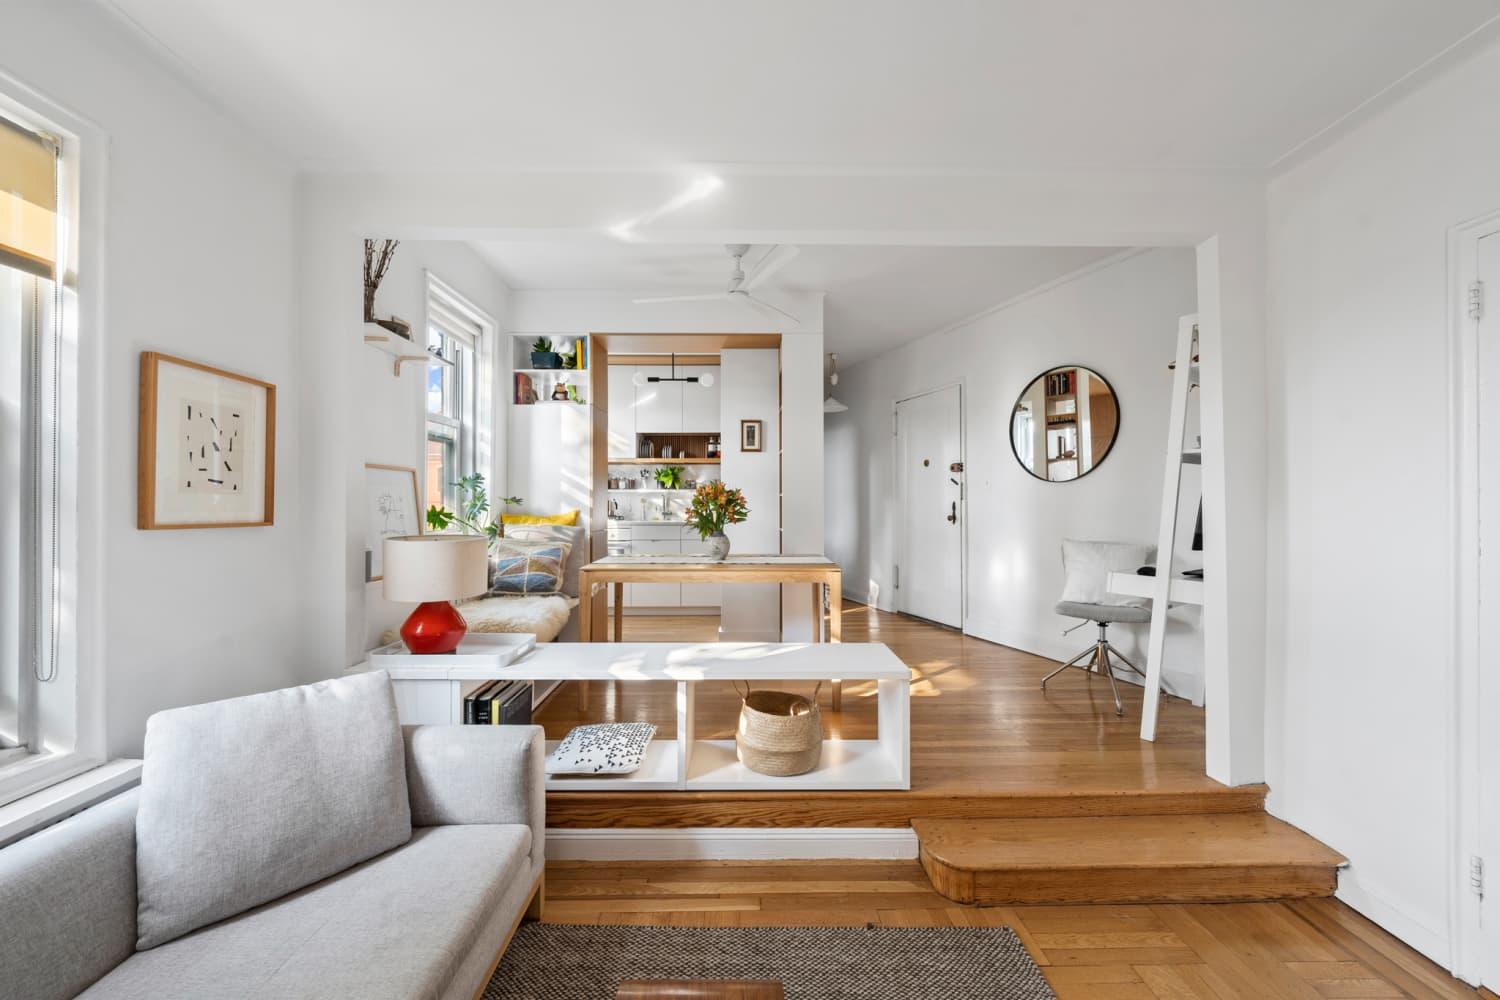 This Tiny One-Bedroom for Sale in Brooklyn Feels Much Larger, Thanks to a Smart Layout